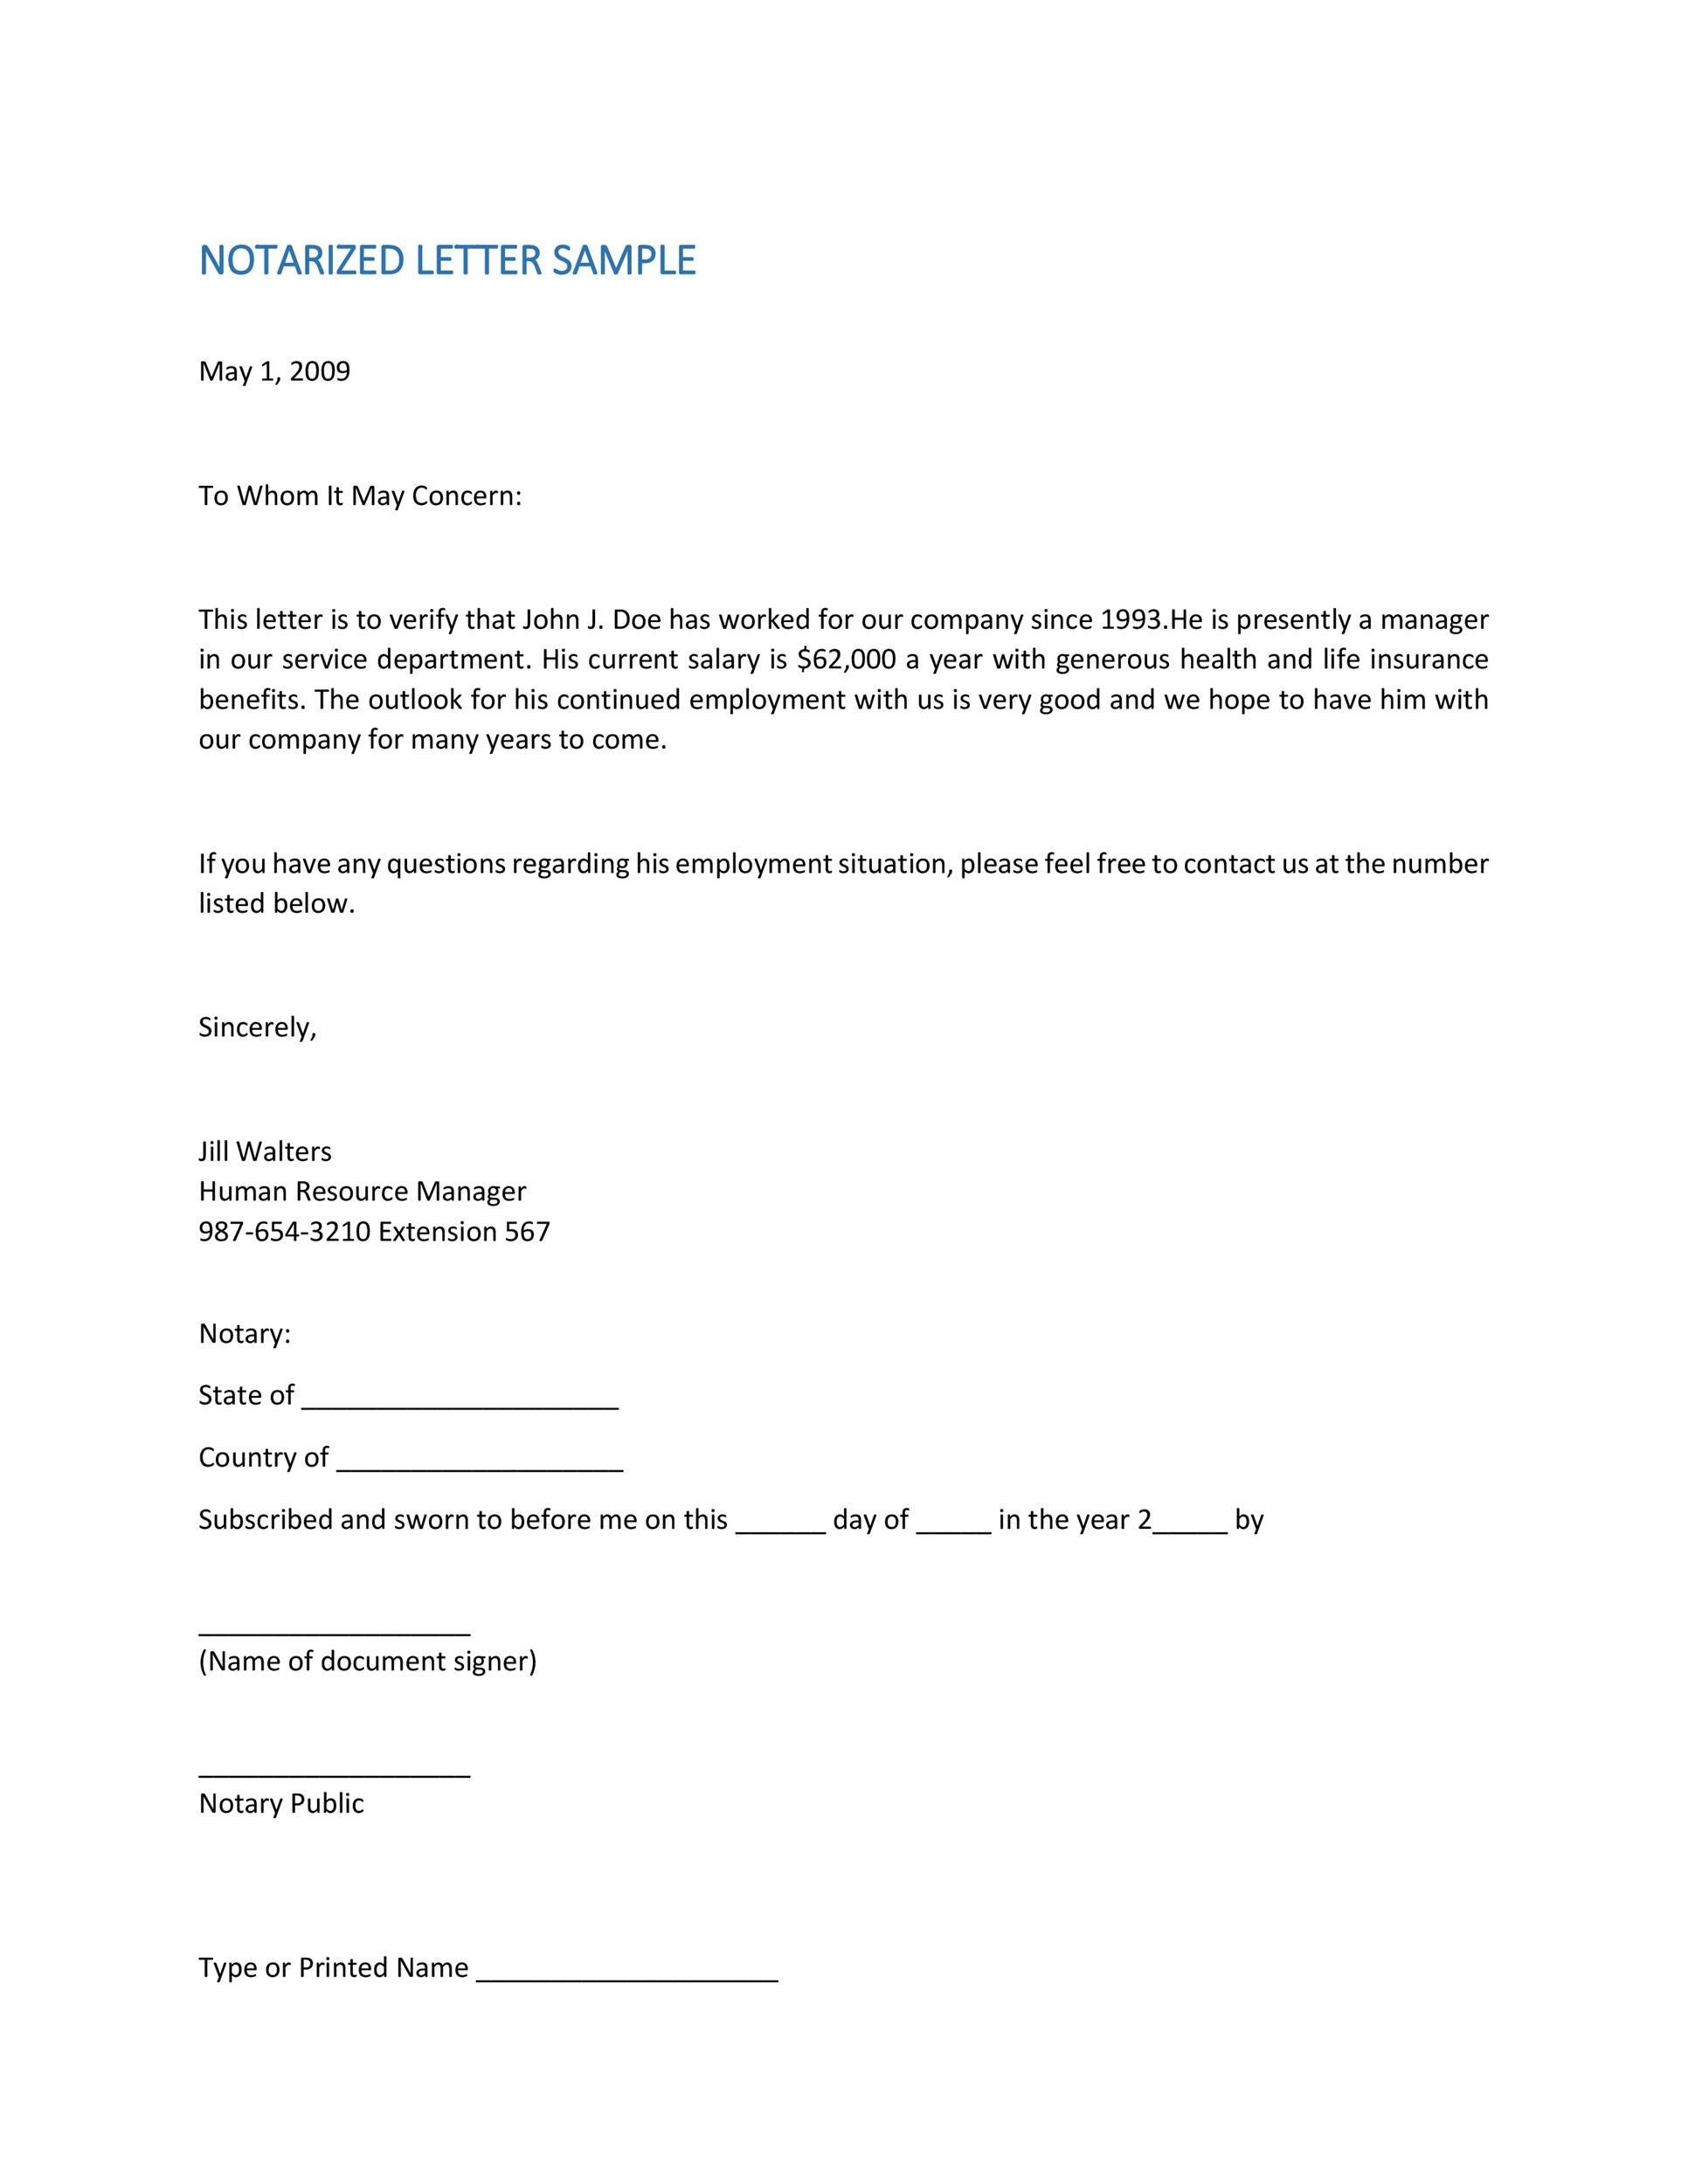 Free Notarized Letter Template 28